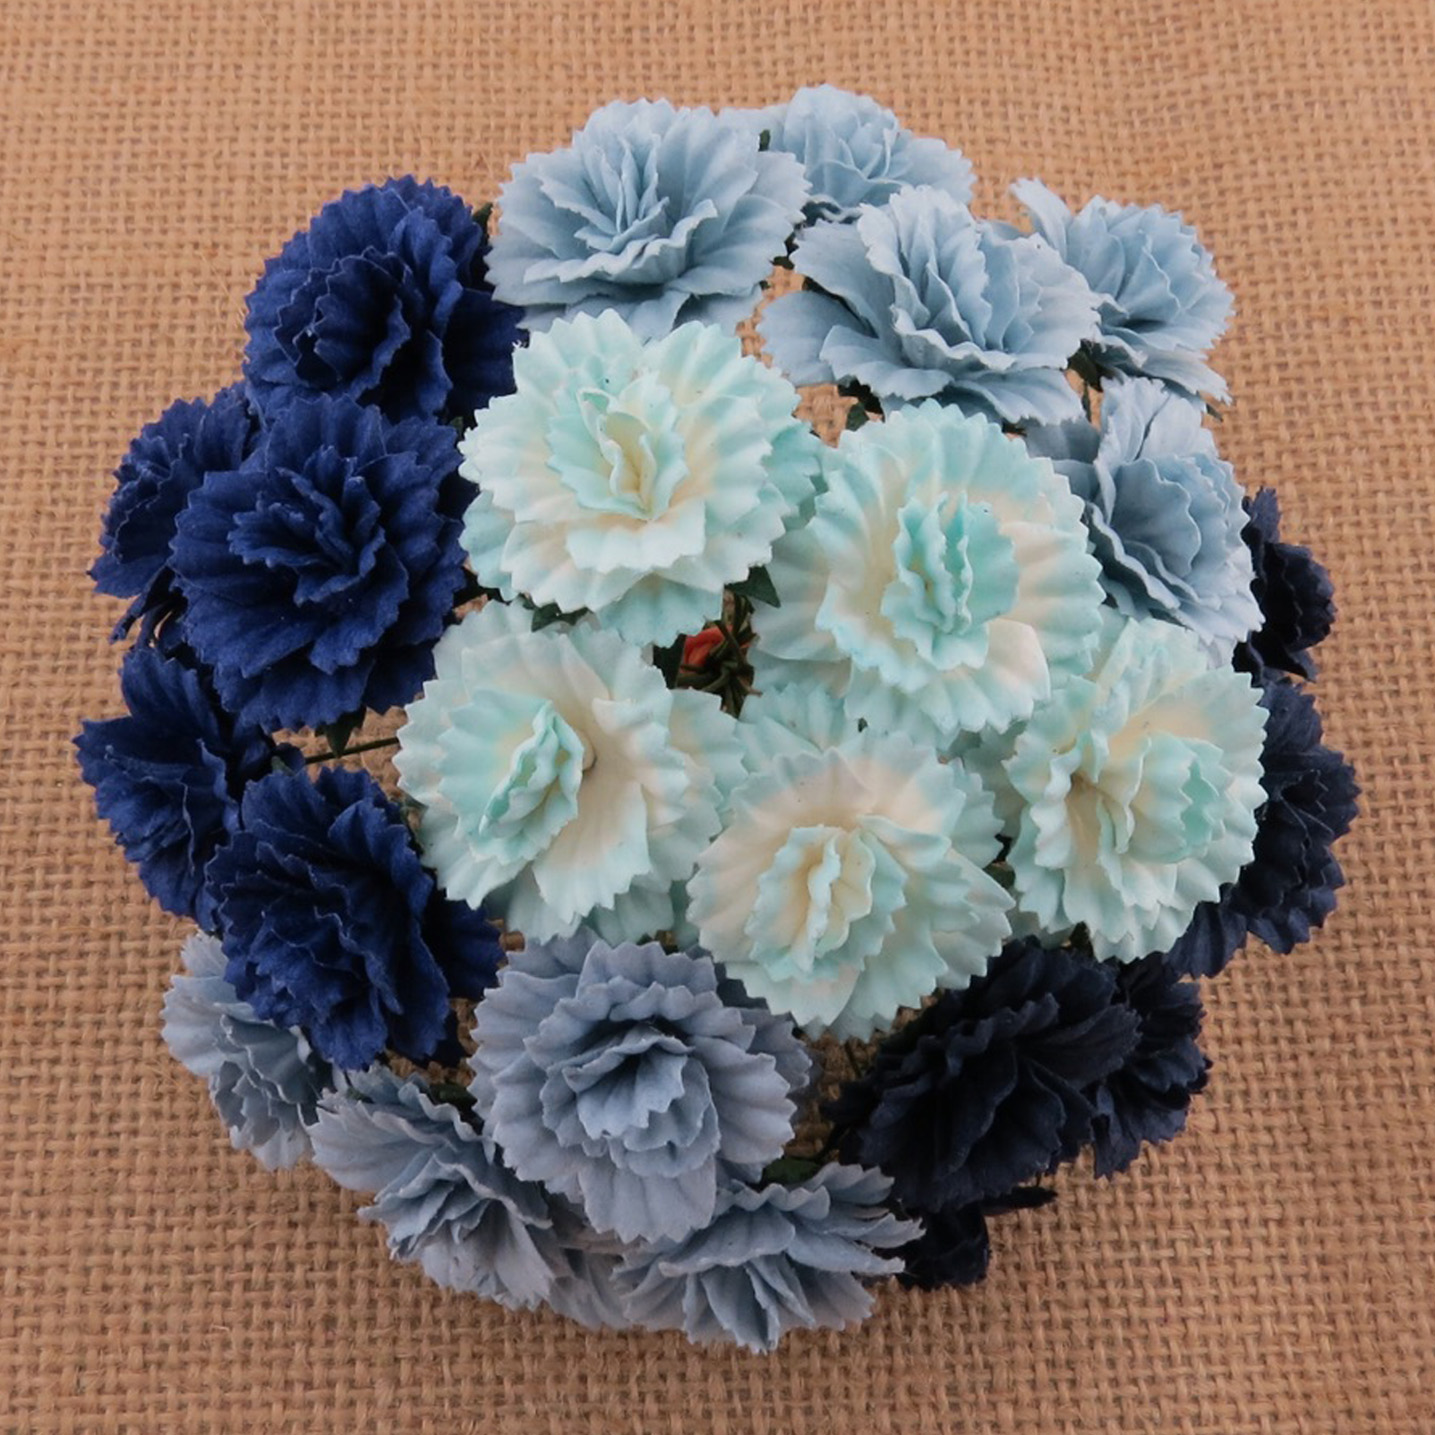 50 MIXED BLUE MULBERRY PAPER CARNATION FLOWERS